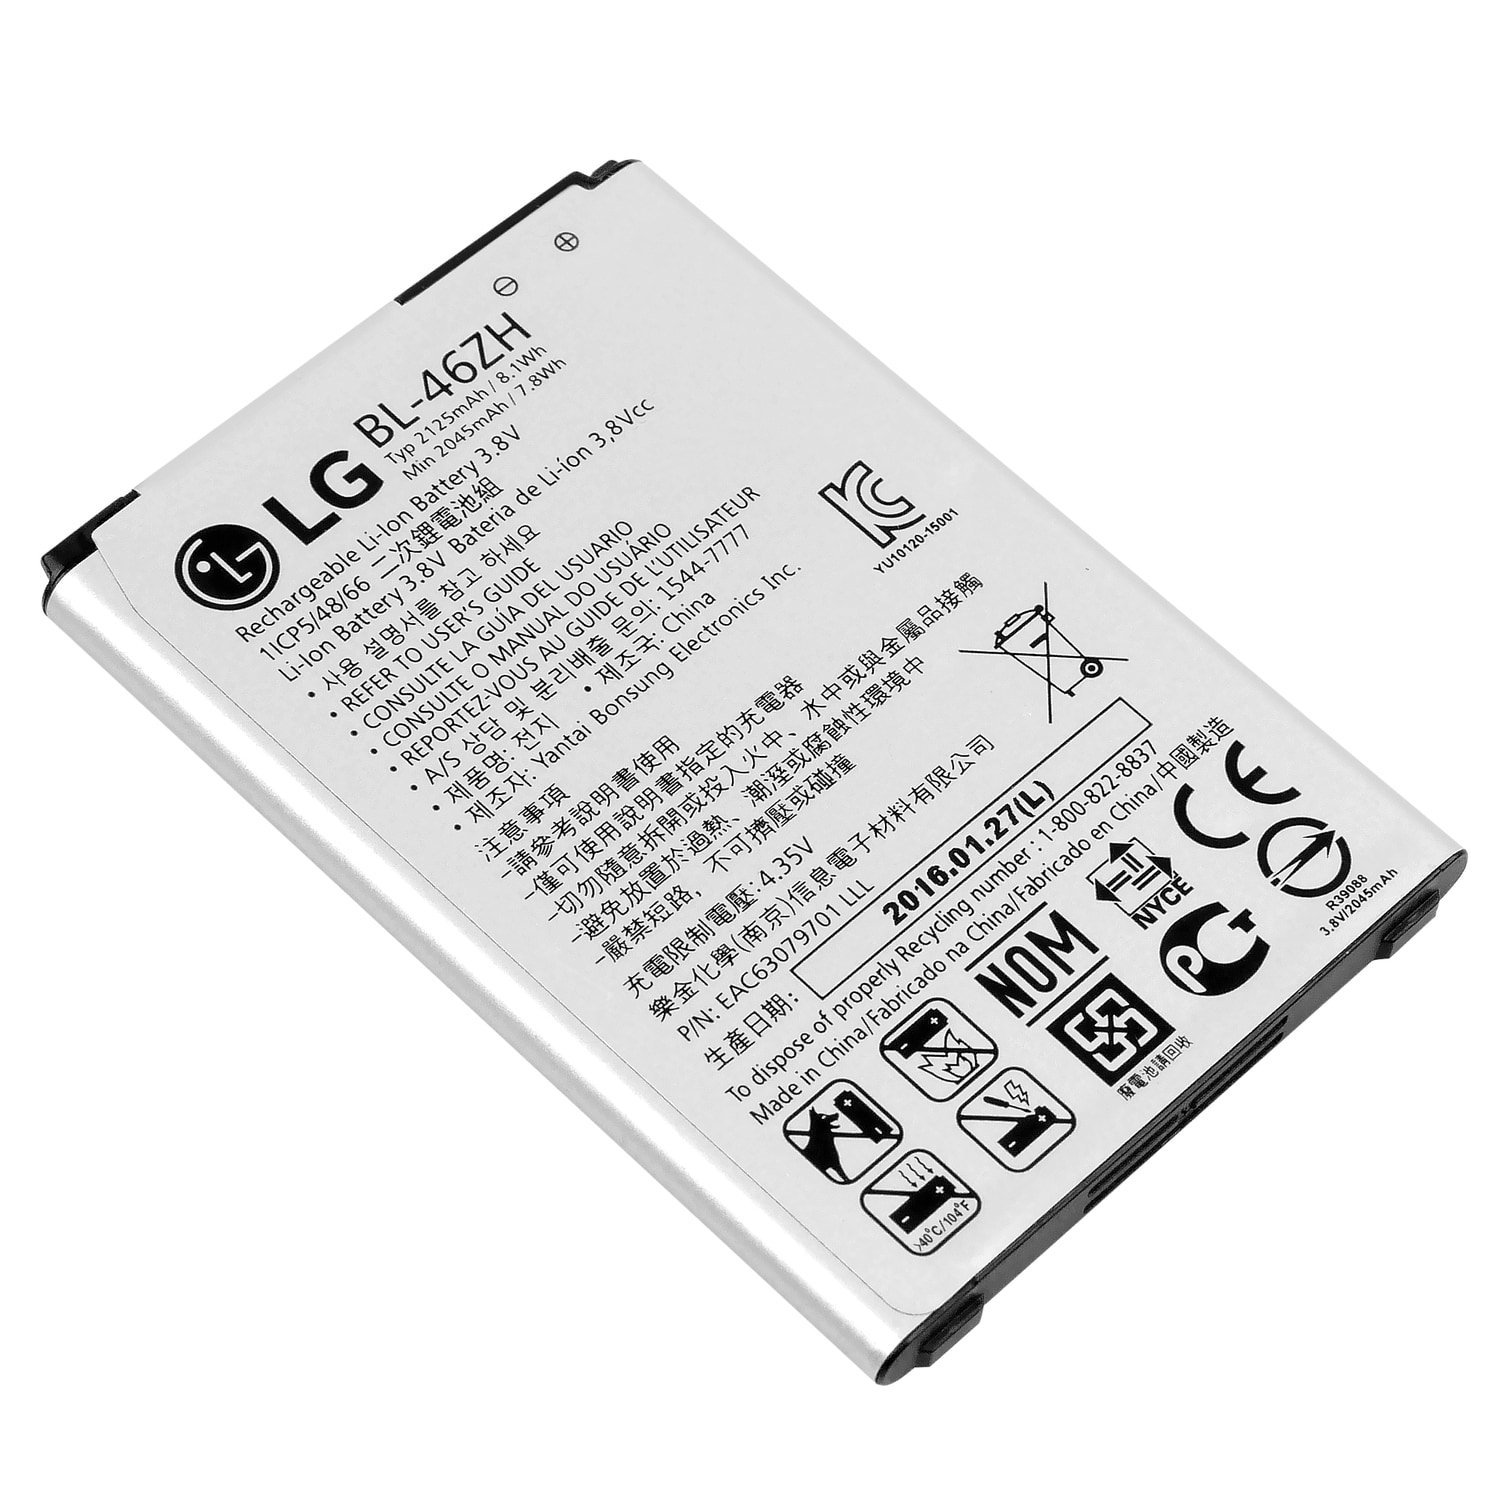 Genuine LG Battery BL-46ZH EAC63079701 2125mAh for Leon Tribute 2 K7 LS675 D213 H340 L33 X210 (Non-Retail Packaging)